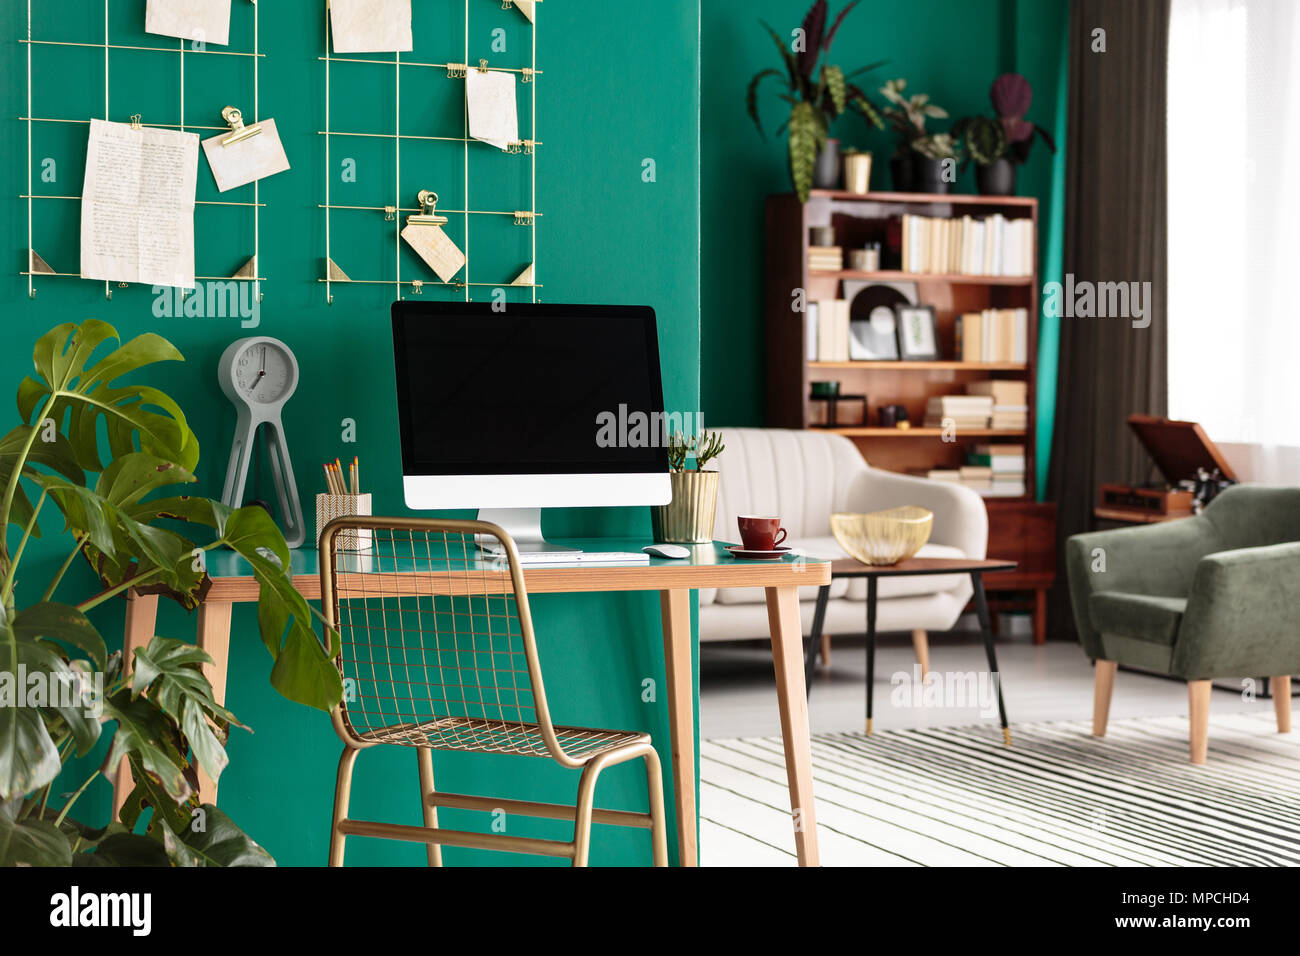 Gold chair at wooden desk with desktop computer in home office interior with plant against green wall - Stock Image